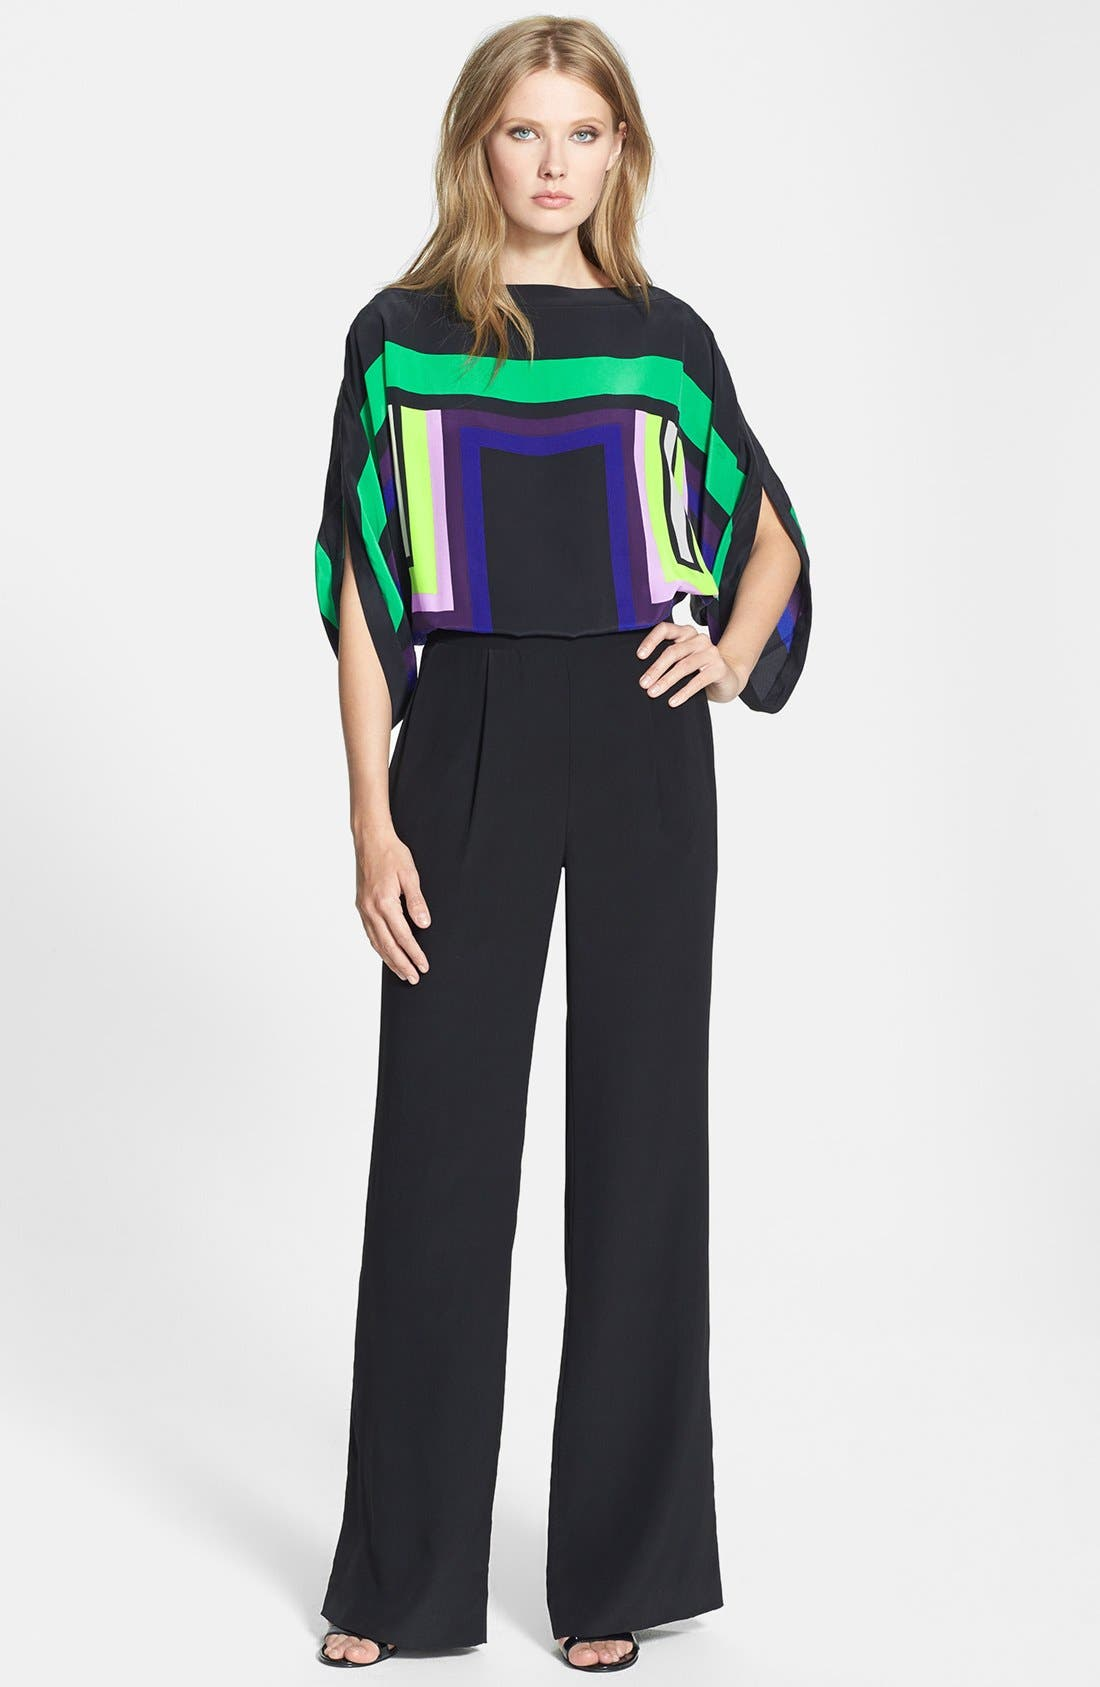 Alternate Image 1 Selected - Diane von Furstenberg 'Lucy' Print Top Silk Jumpsuit